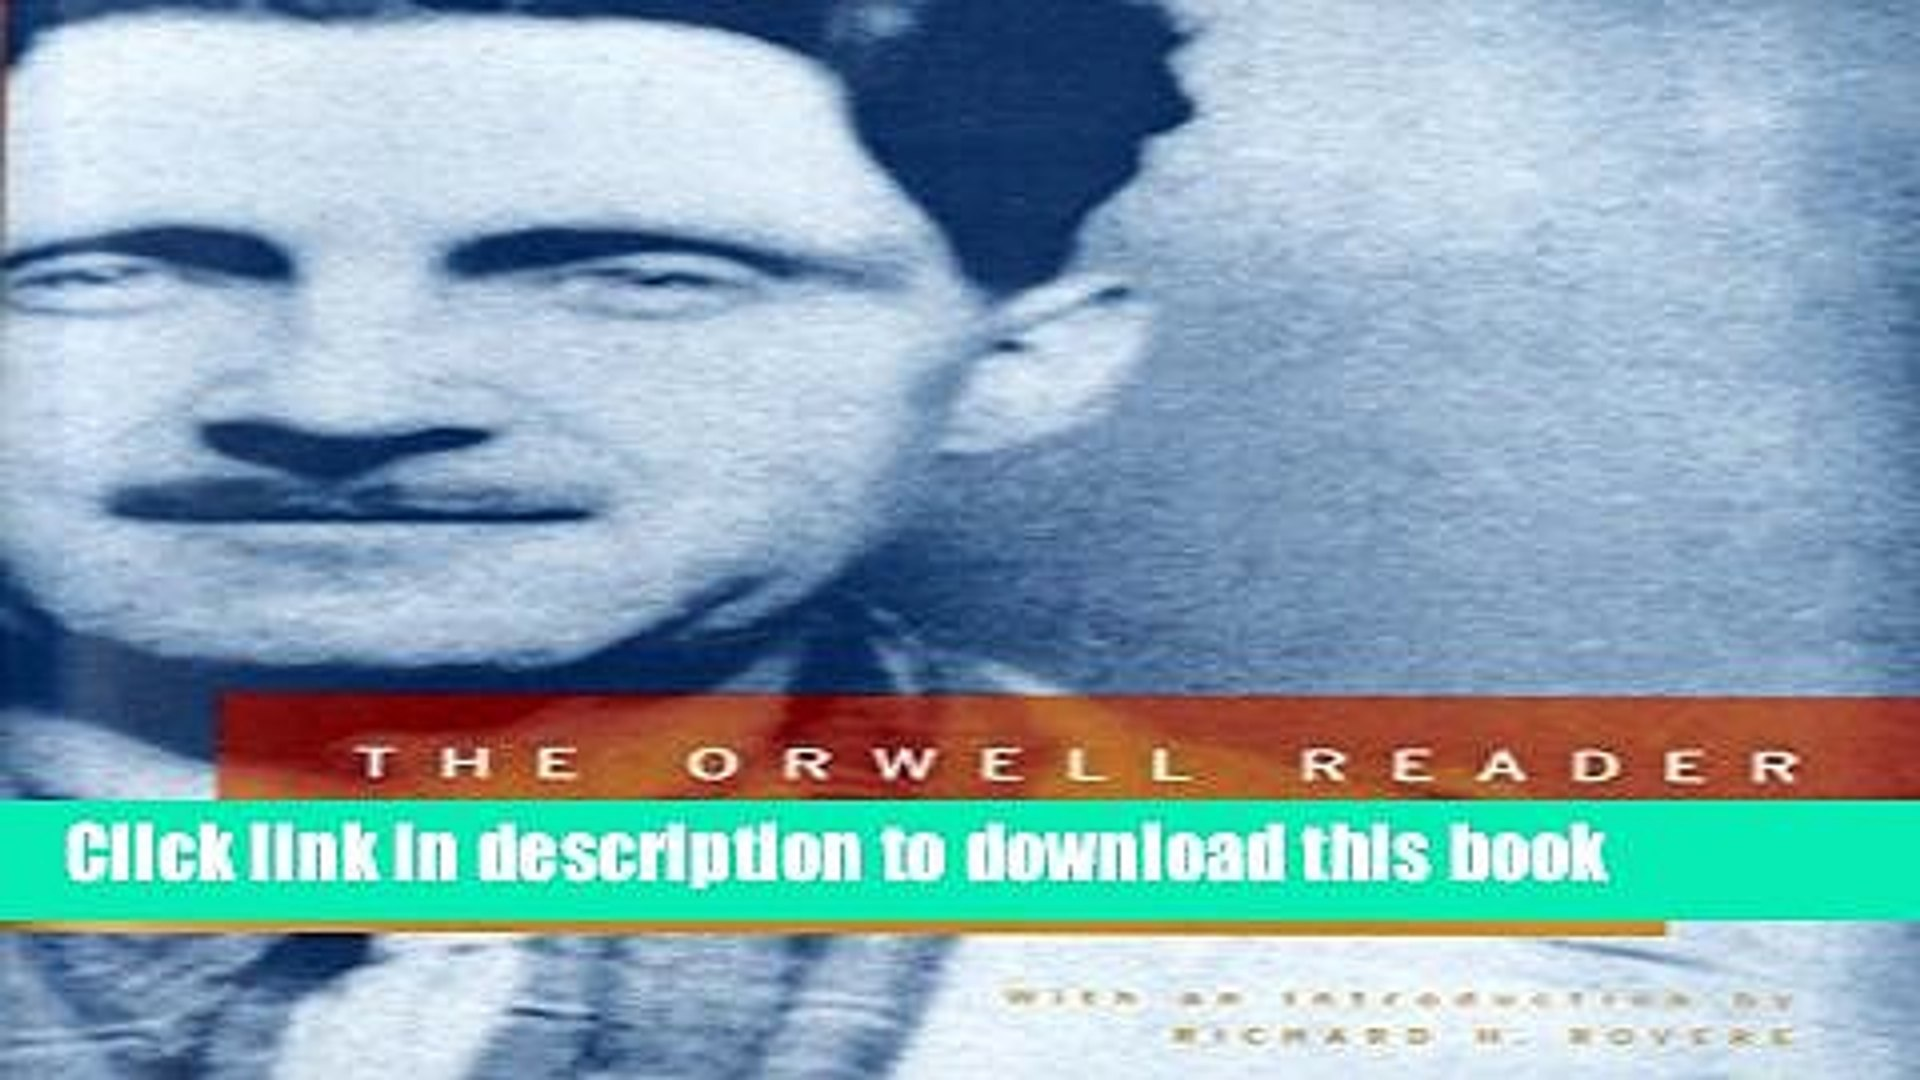 orwell reader fiction essays reportage